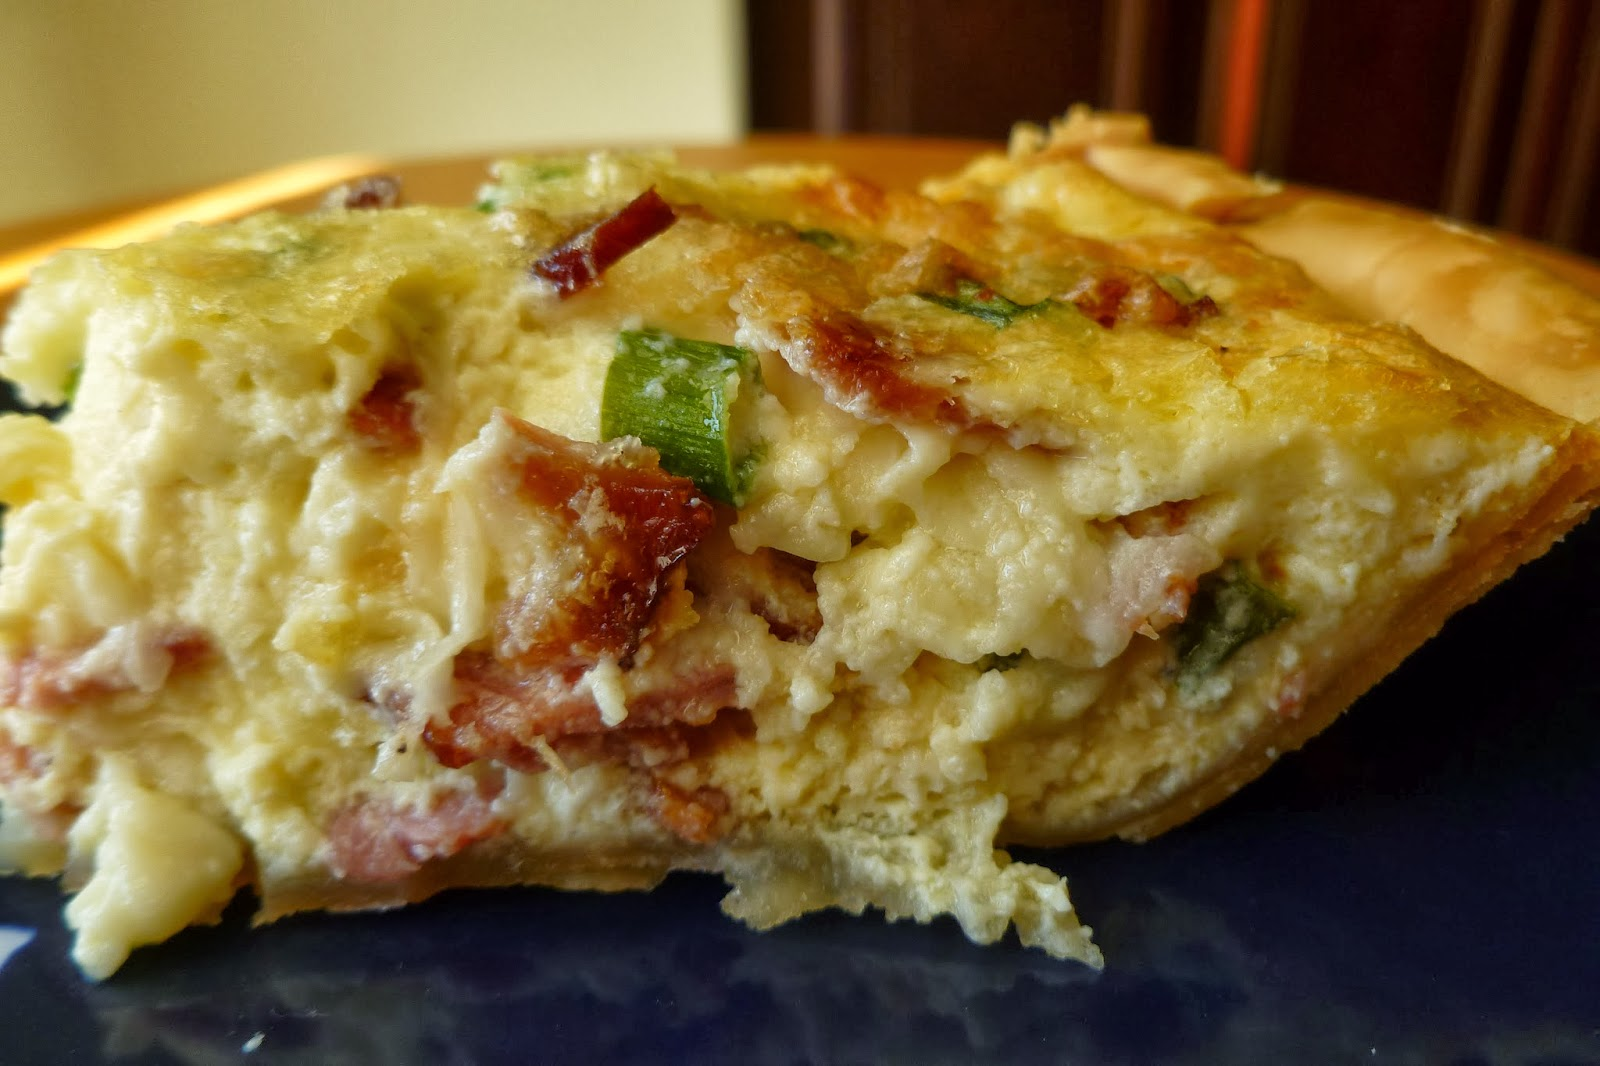 The Pastry Chef's Baking: Bacon Quiche